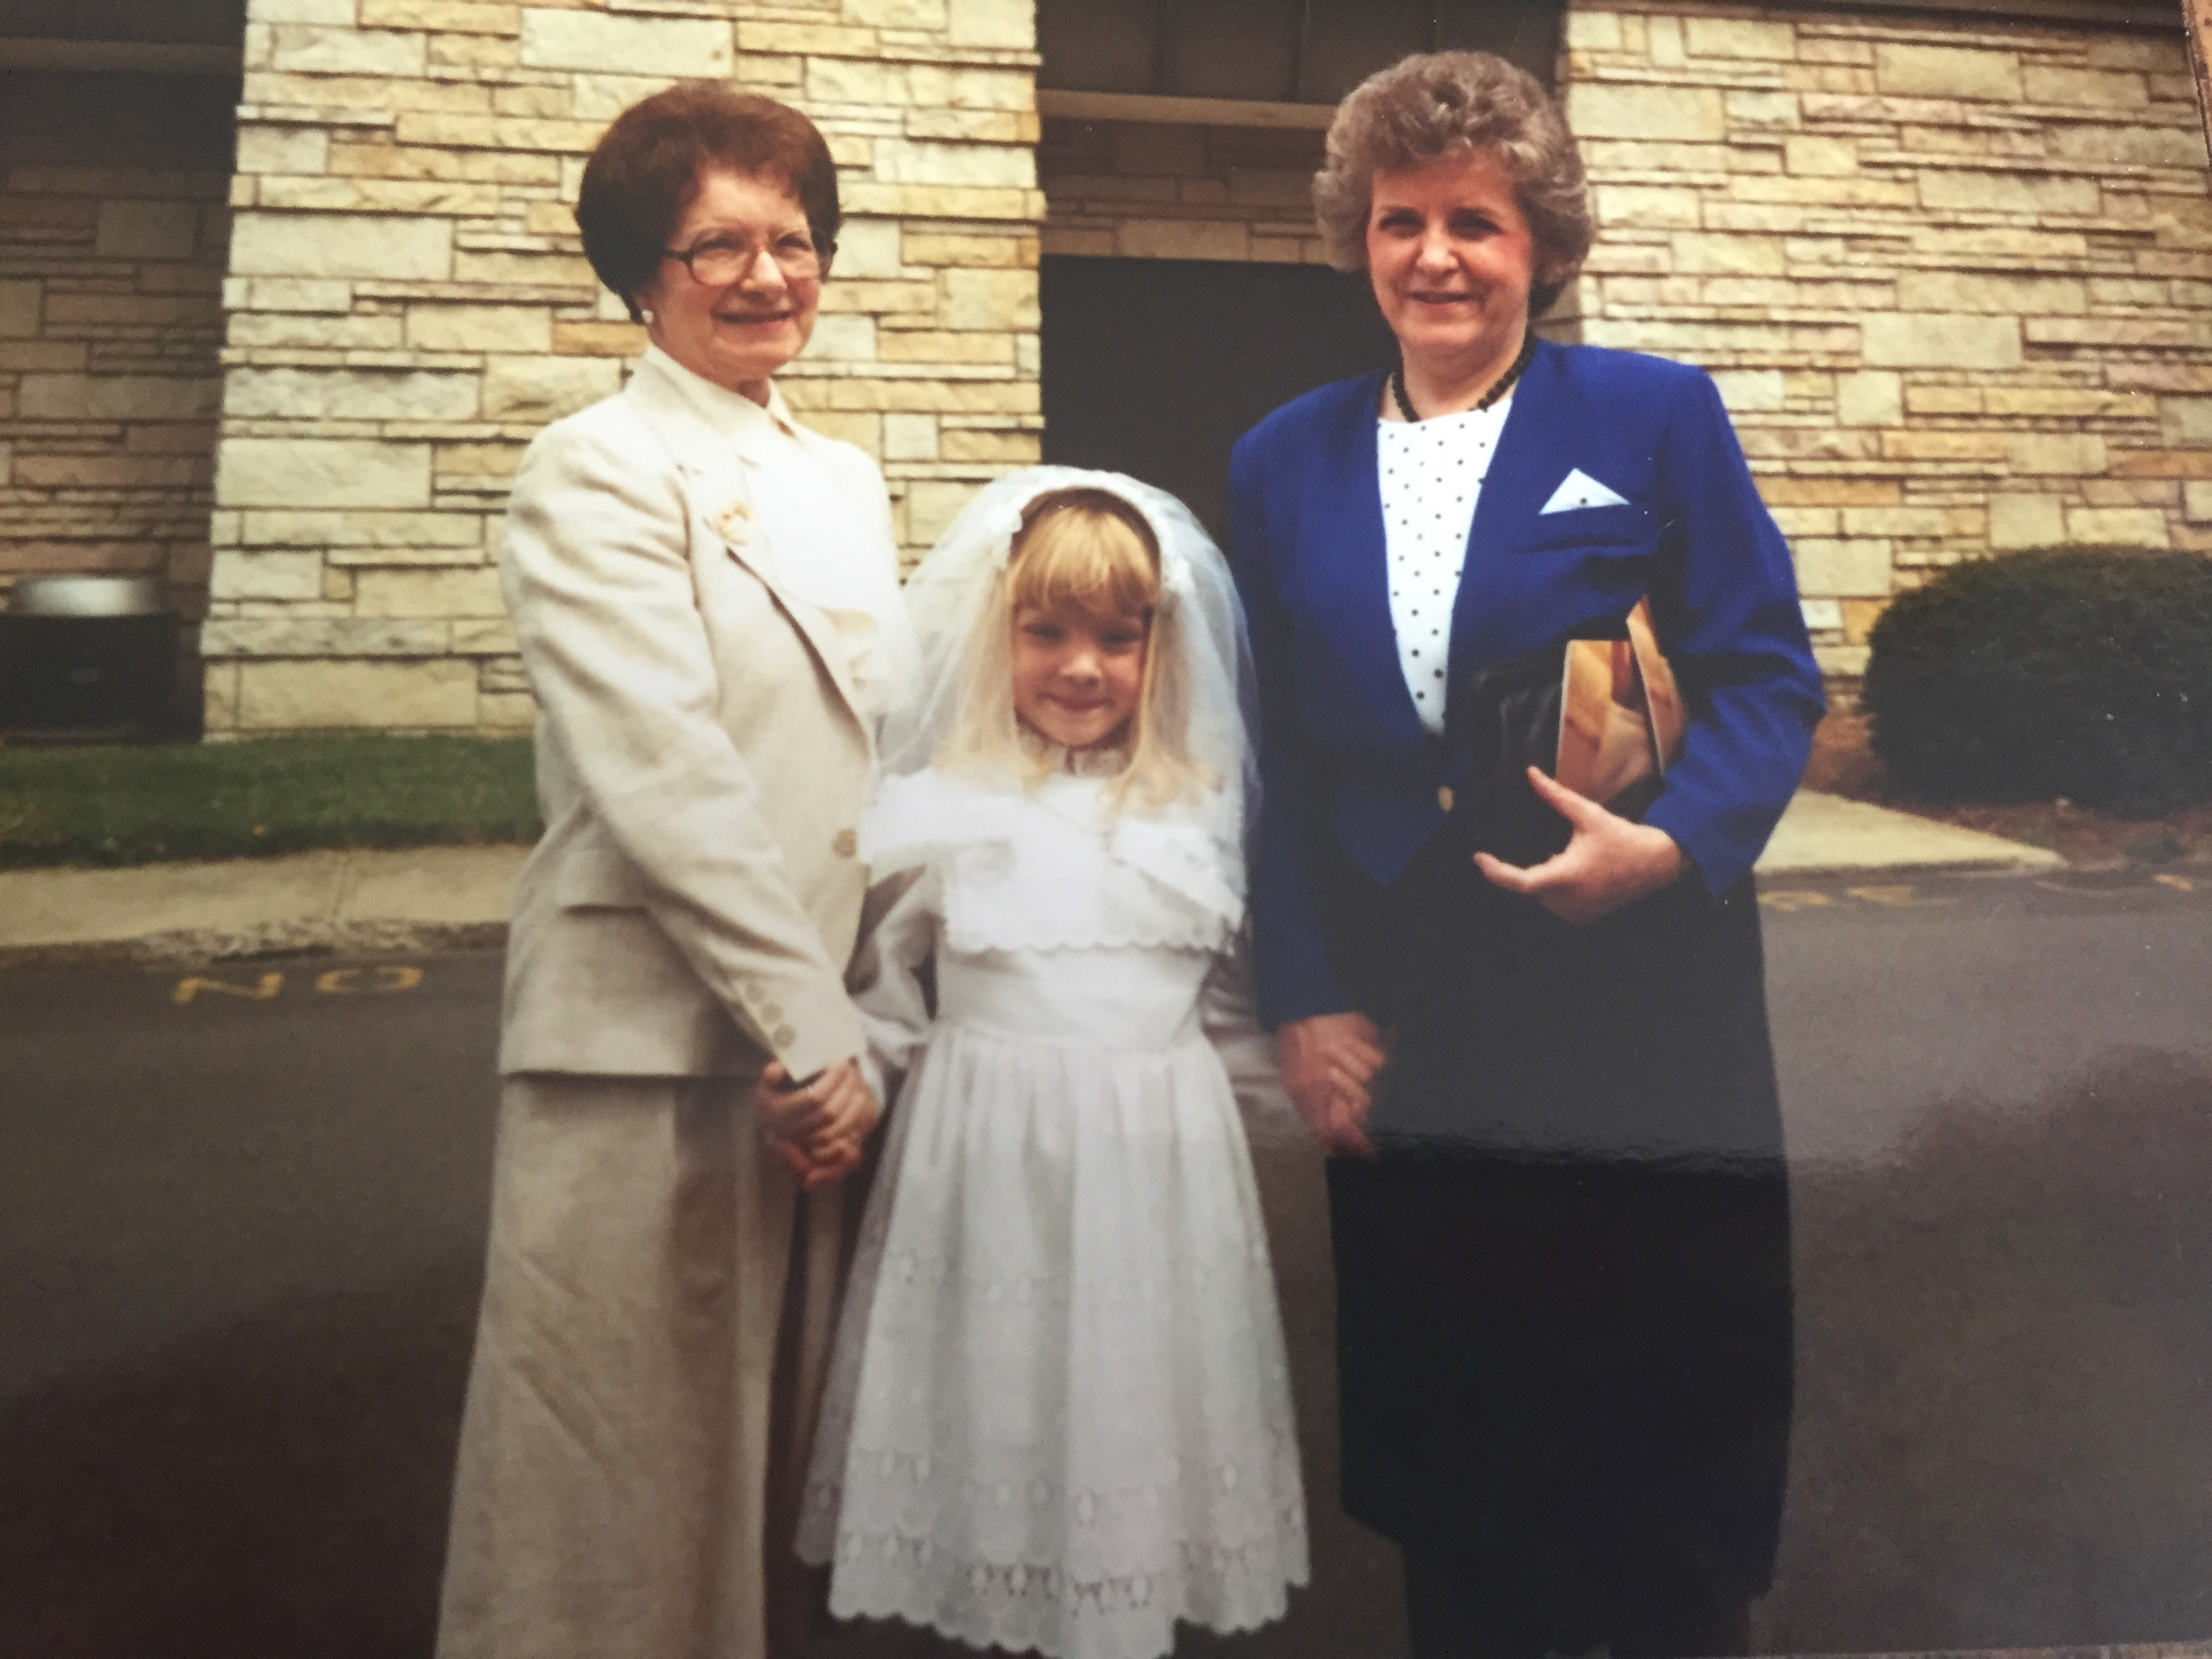 My First Communion, April 1990, with my grandmothers: Grandma D is on the left, and Grandma H is on the right.